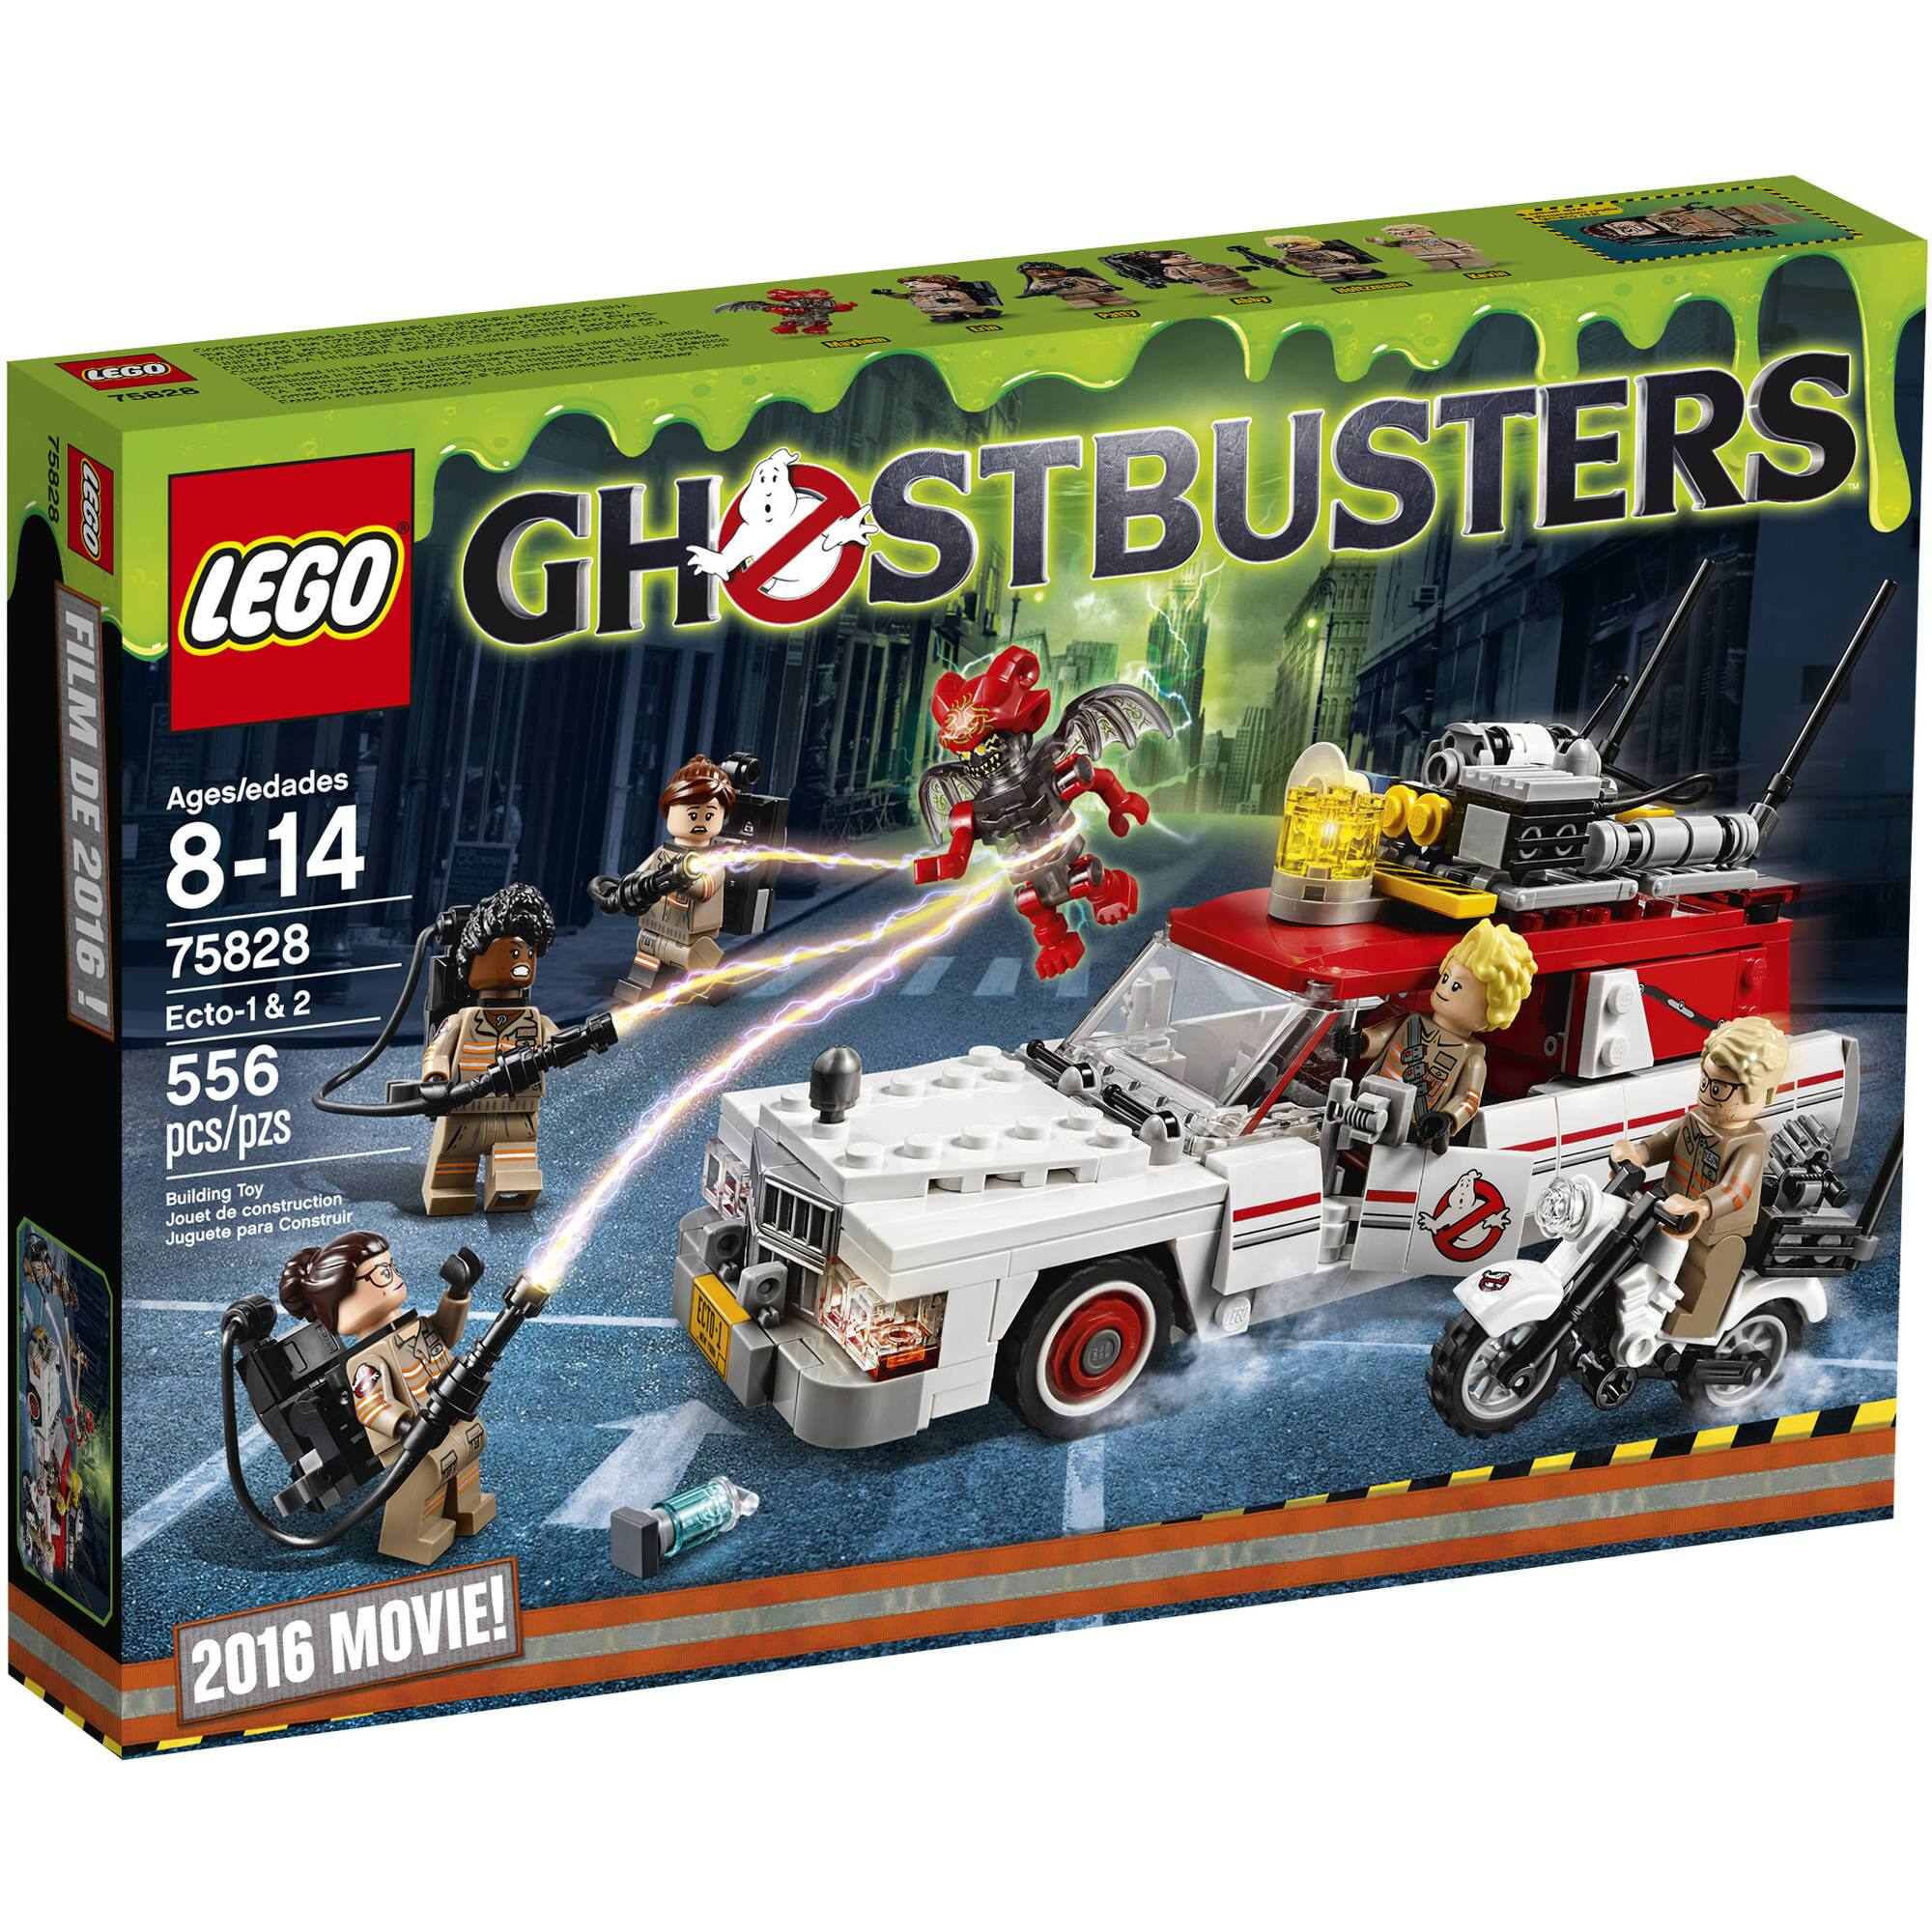 Lego Ghostbusters Ecto 1 and Ecto 2 2016 75828 YMMV Walmart $15 or $35